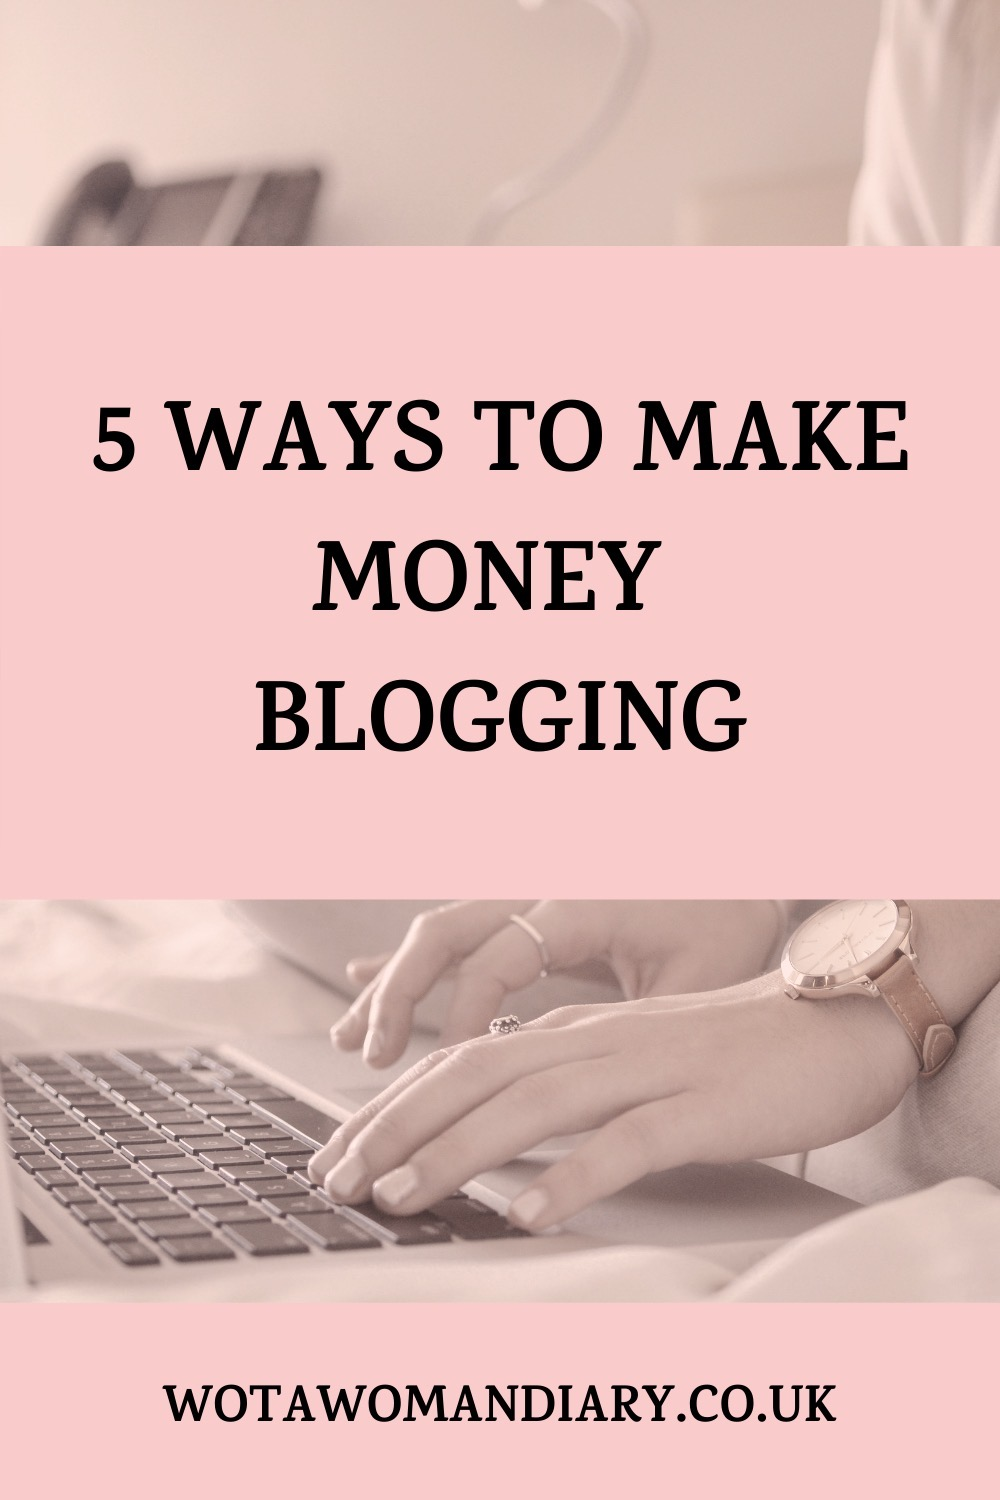 text image in bold font reads 5 ways to make money blogging